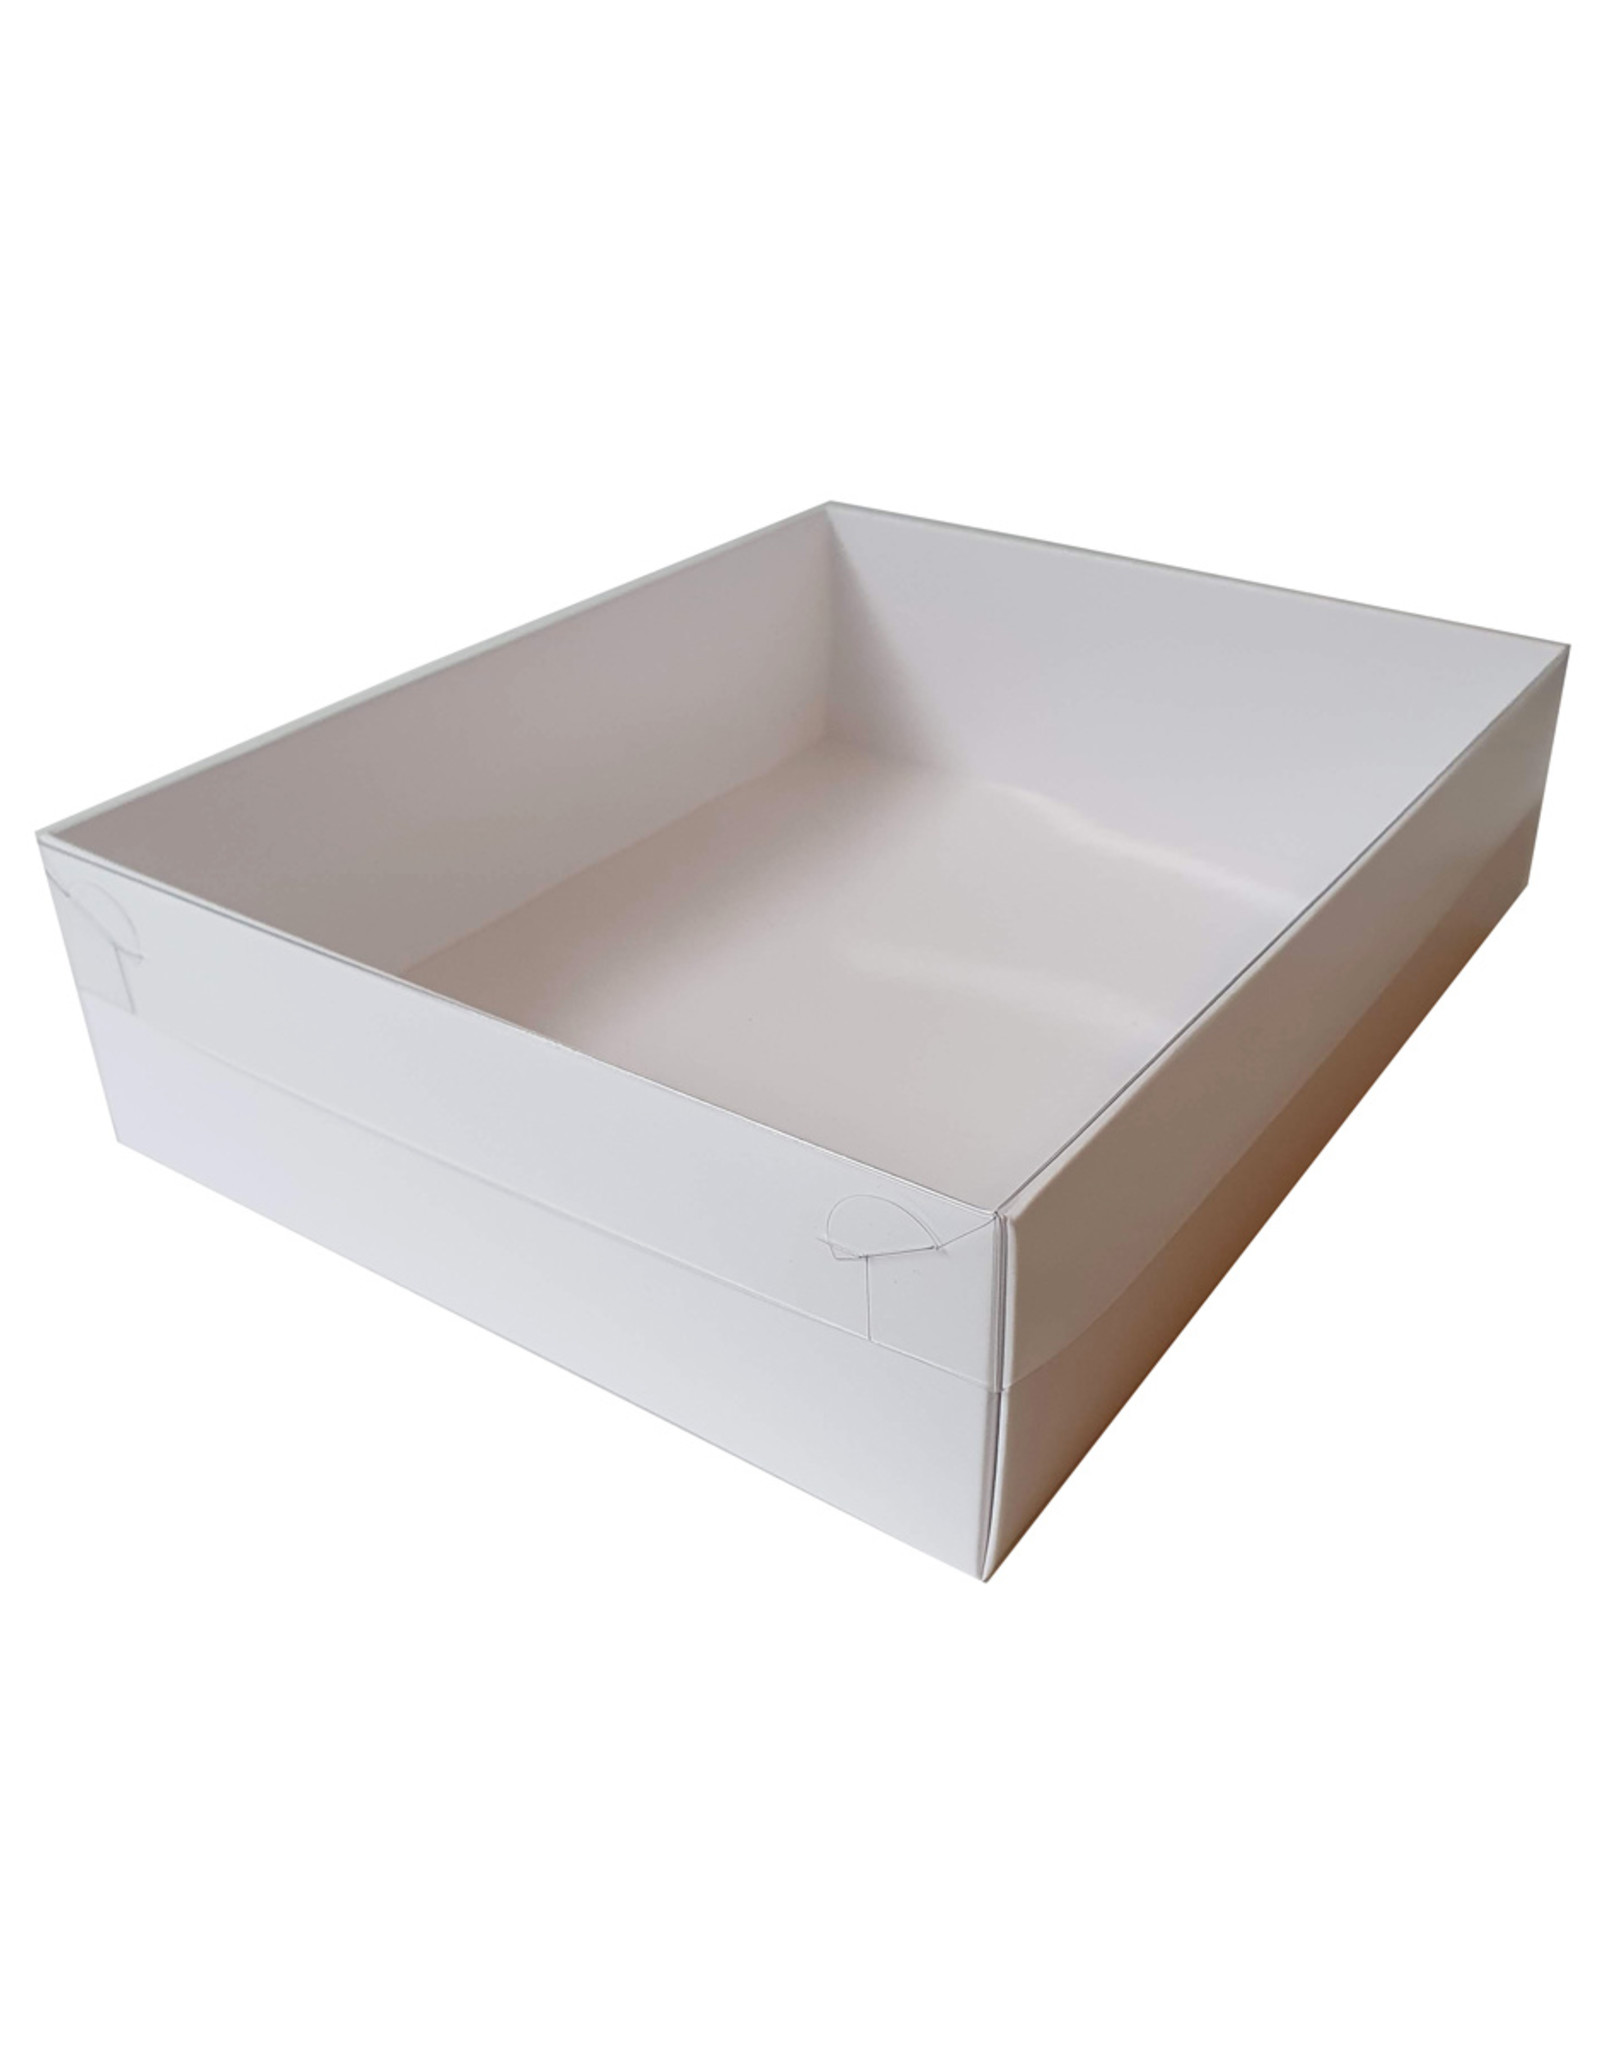 White sweets box with clear lid - 25 x 20 x 7 cm (per 50 pieces)